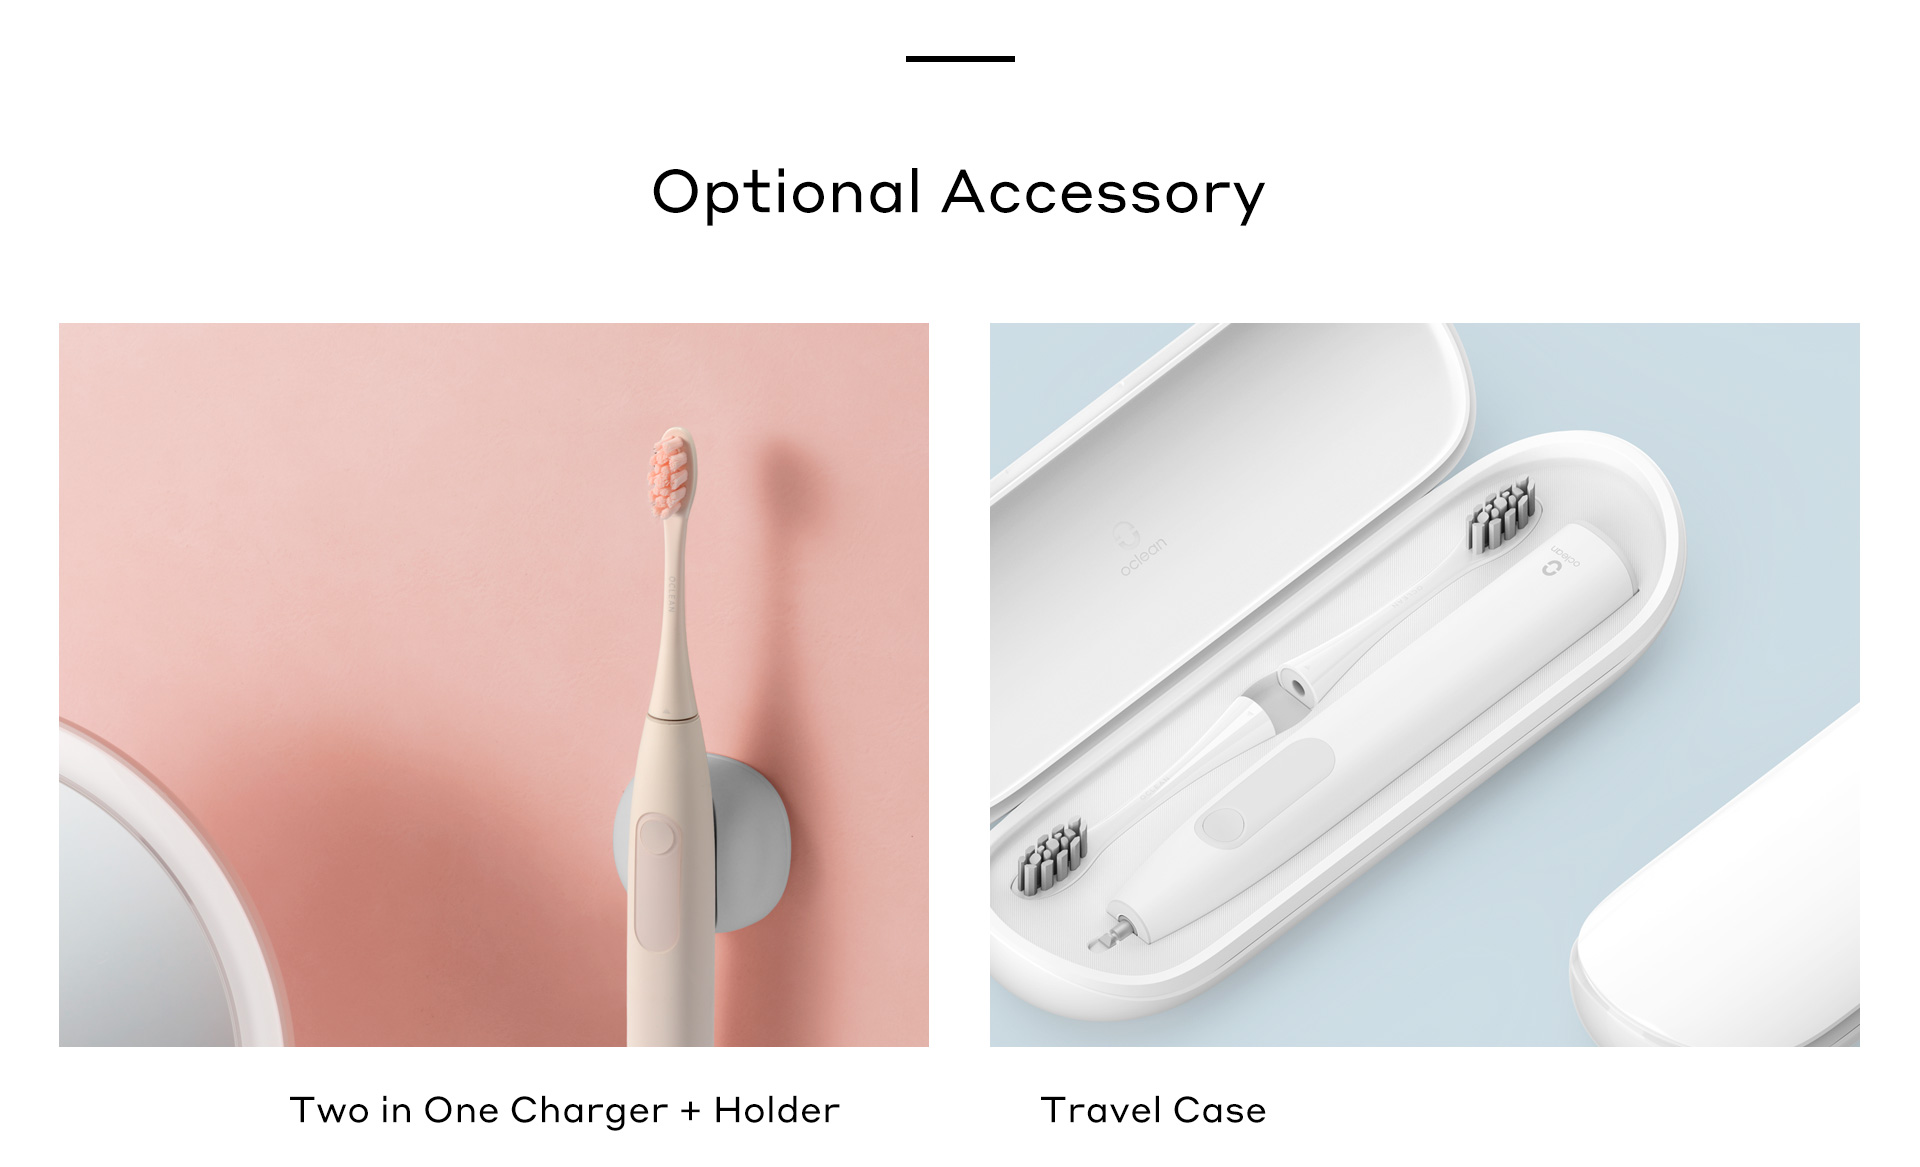 oclean F1 accessory charger +Holder travel case